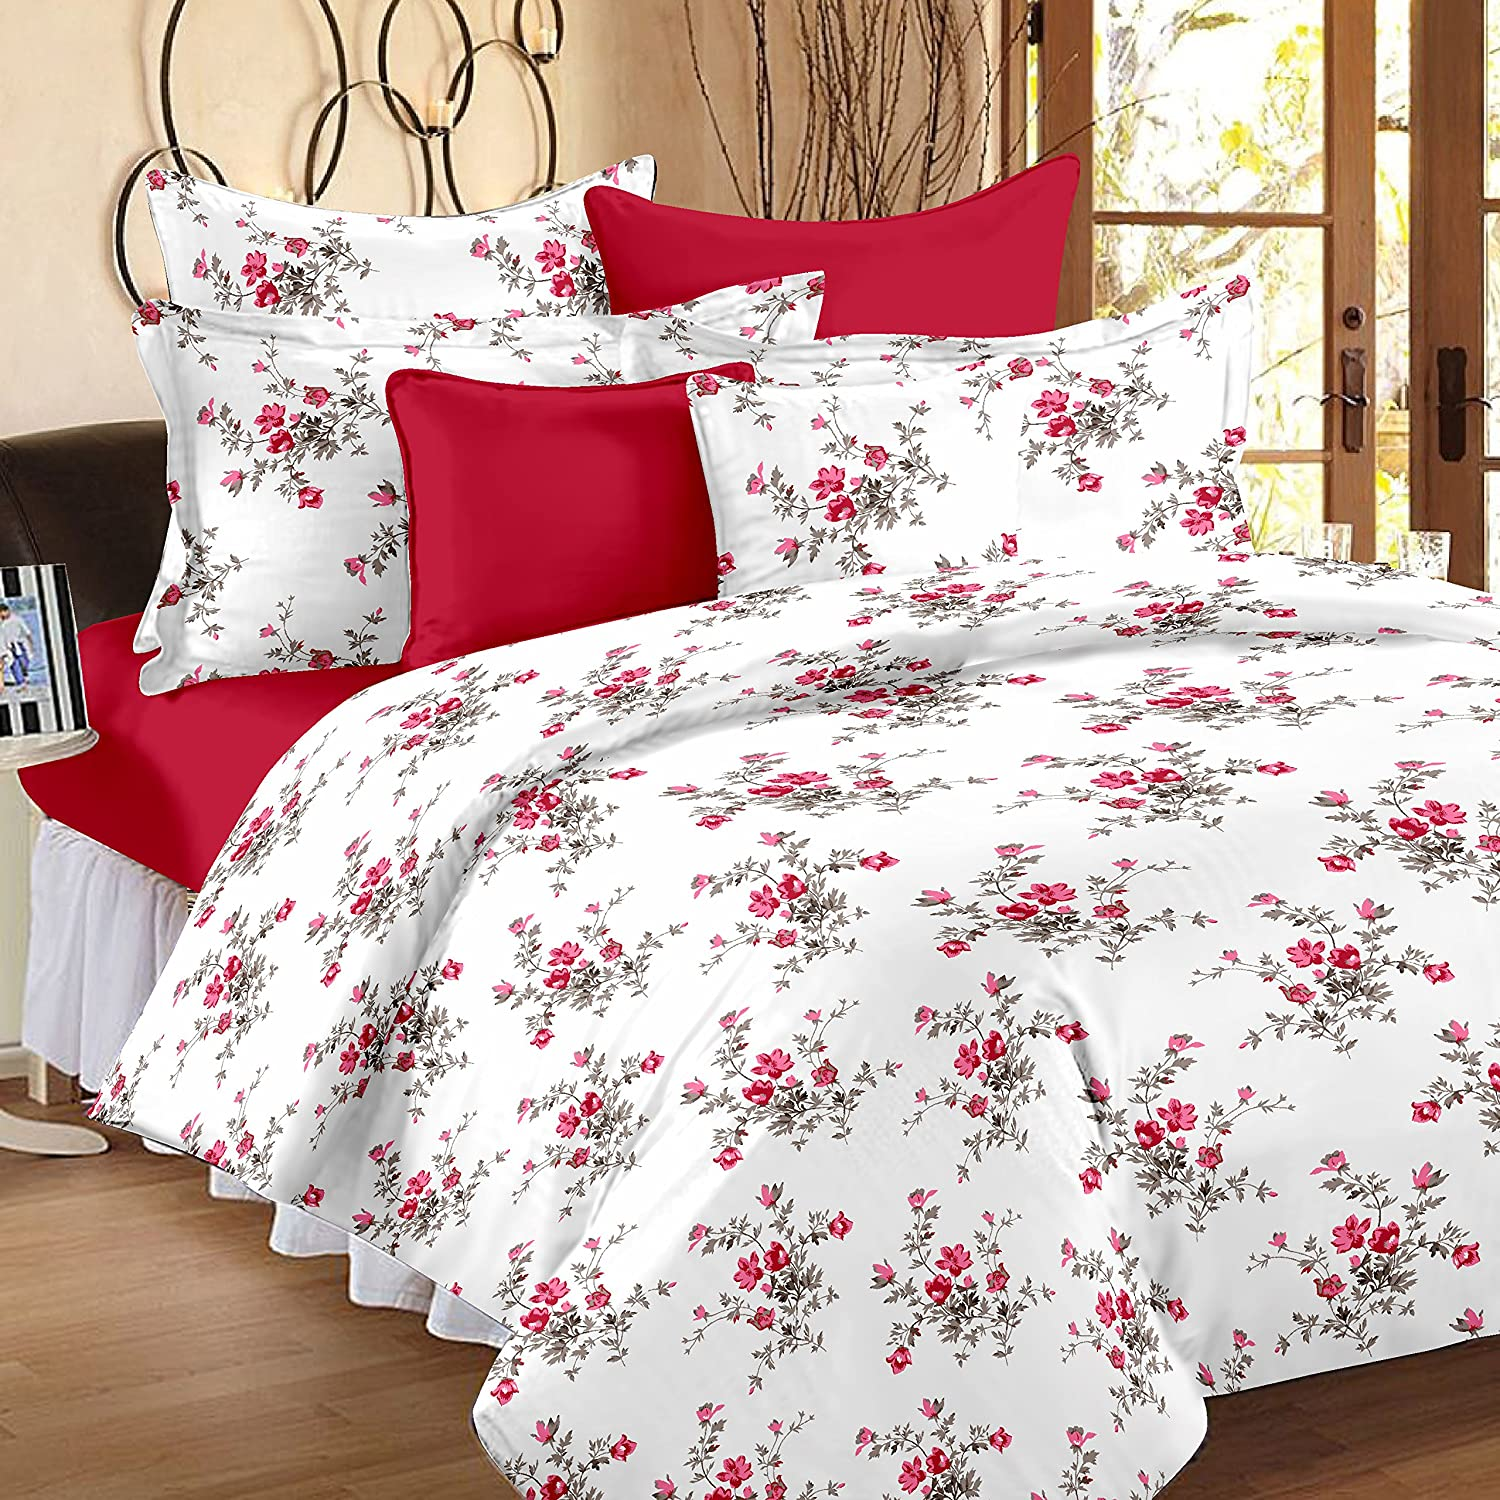 Delightful Ahmedabad Cotton Comfort 160 TC Cotton Single Bedsheet With Pillow Cover    White And Pink: Amazon.in: Home U0026 Kitchen